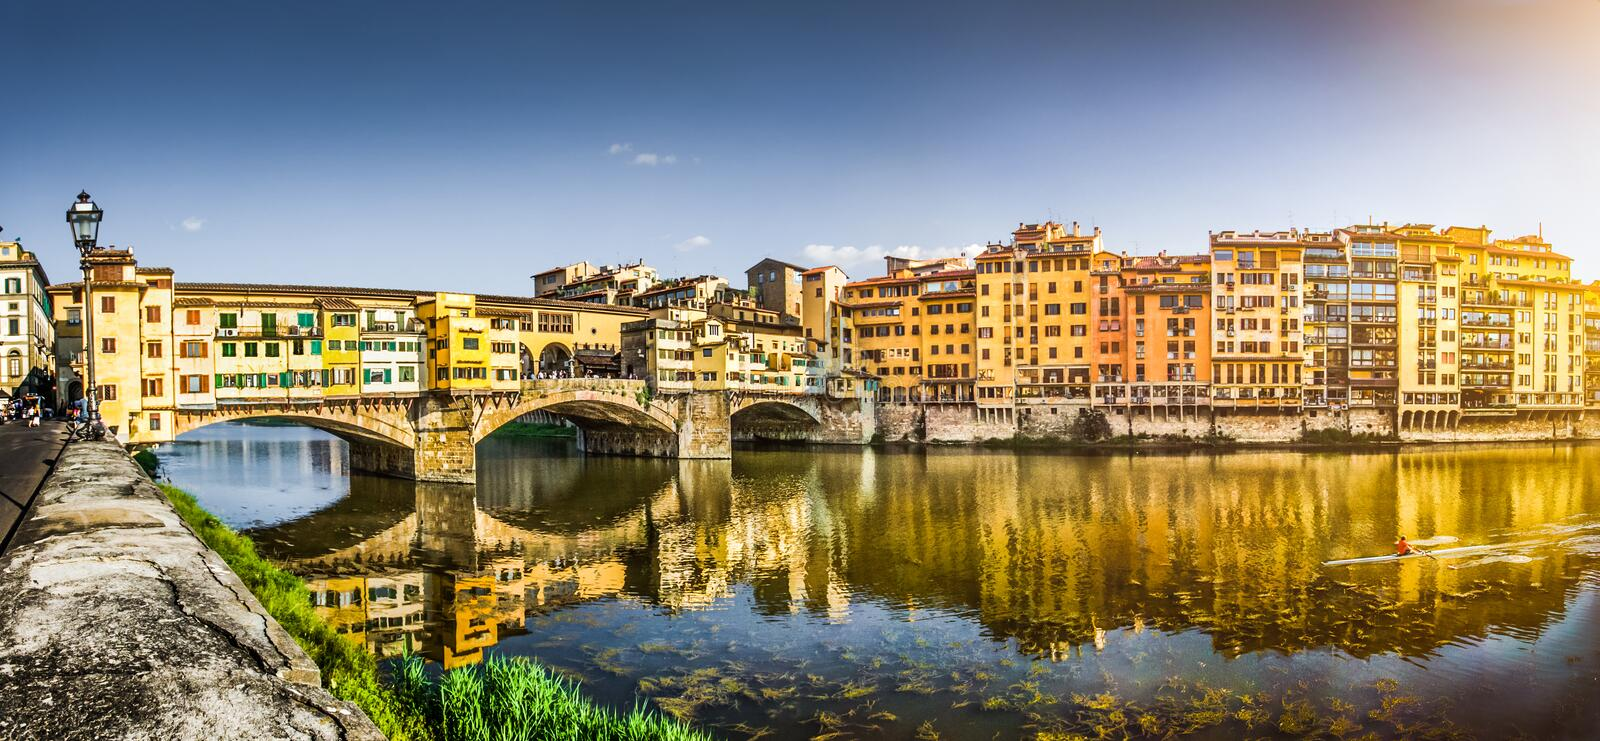 Panoramic view of Ponte Vecchio with river Arno at sunset, Florence, Italy royalty free stock images